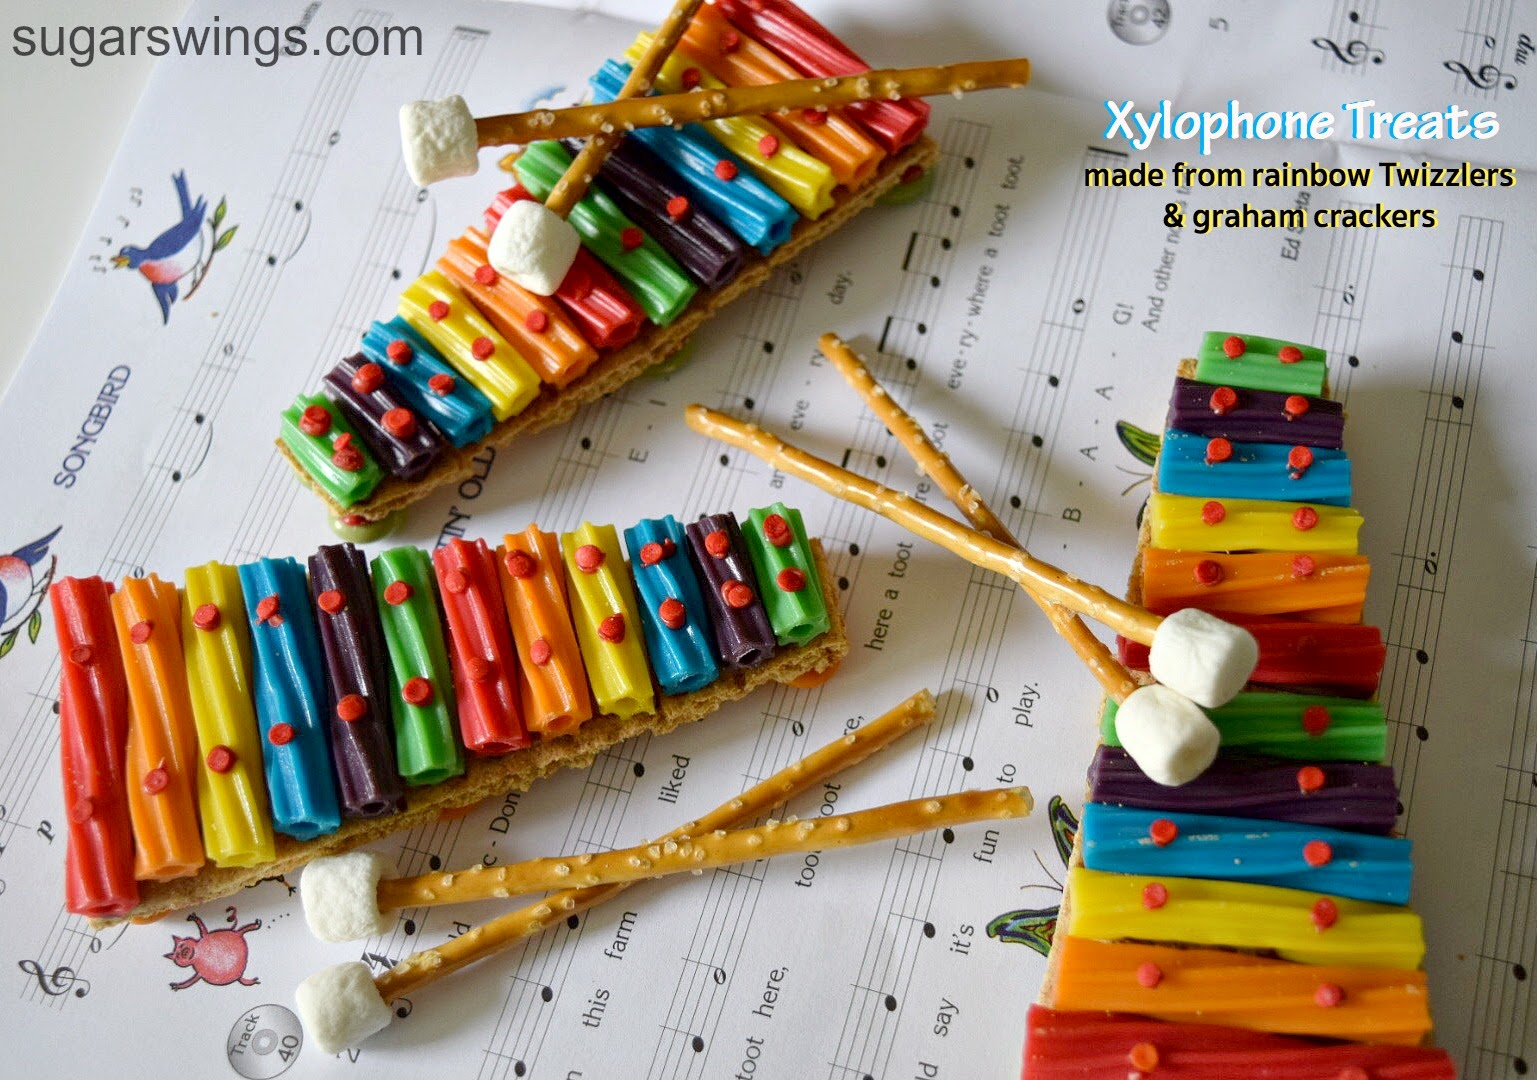 Sugar swings serve some rainbow twizzler xylophone treats for Cuisine instrument